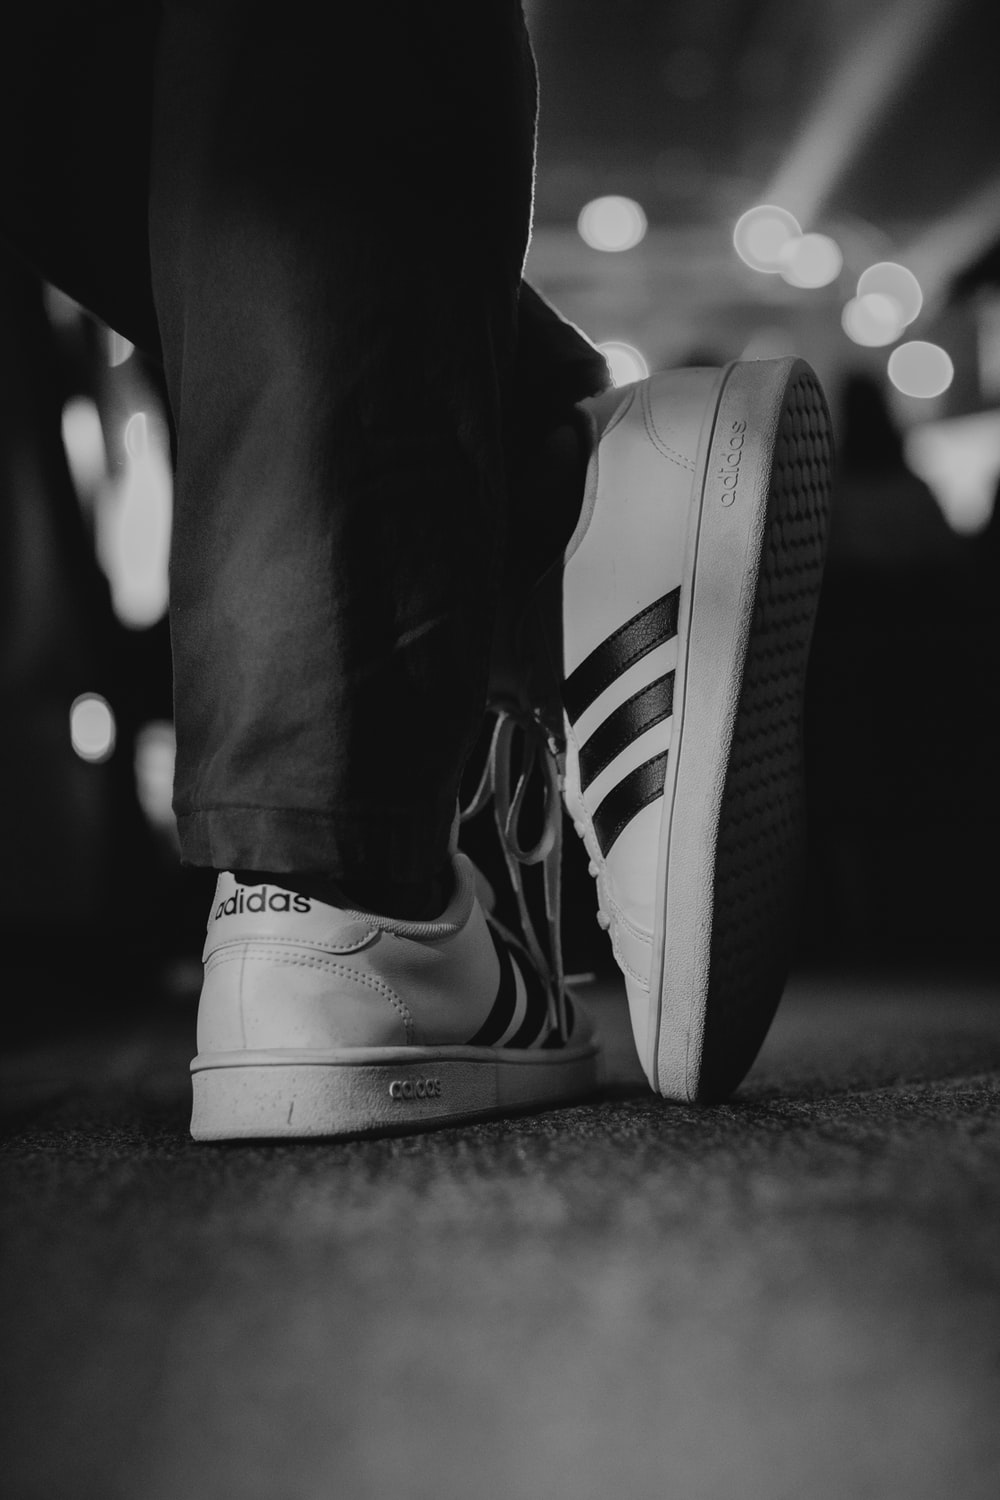 person wearing adidas low-top sneakers